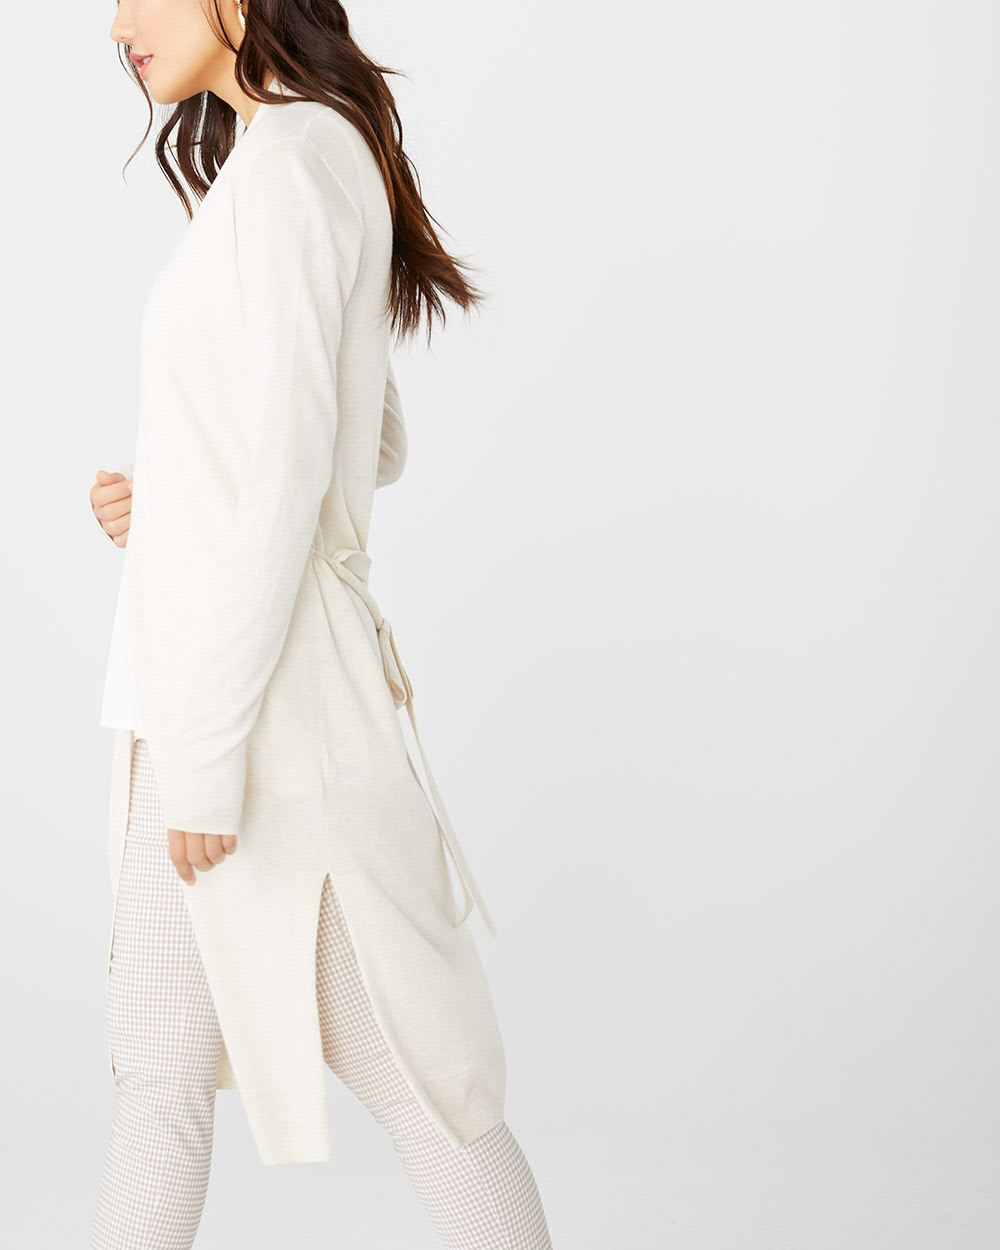 C&G Cashmere-like Belted duster cardigan